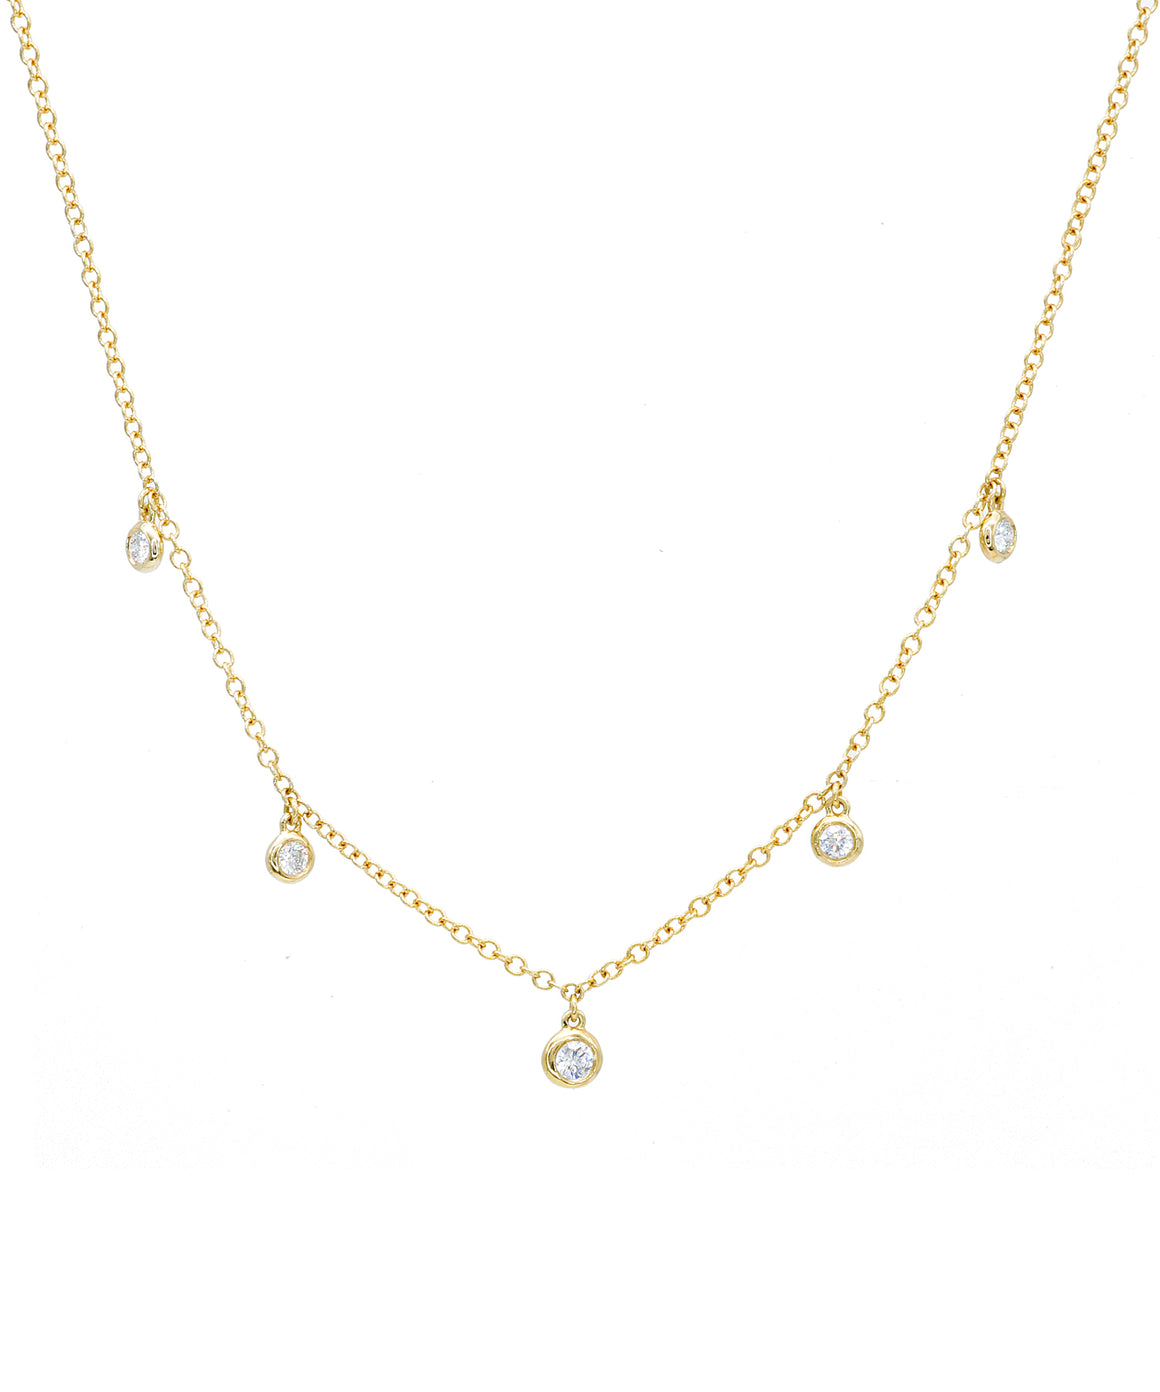 Bezel Drop Diamond Necklace - Lesley Ann Jewels